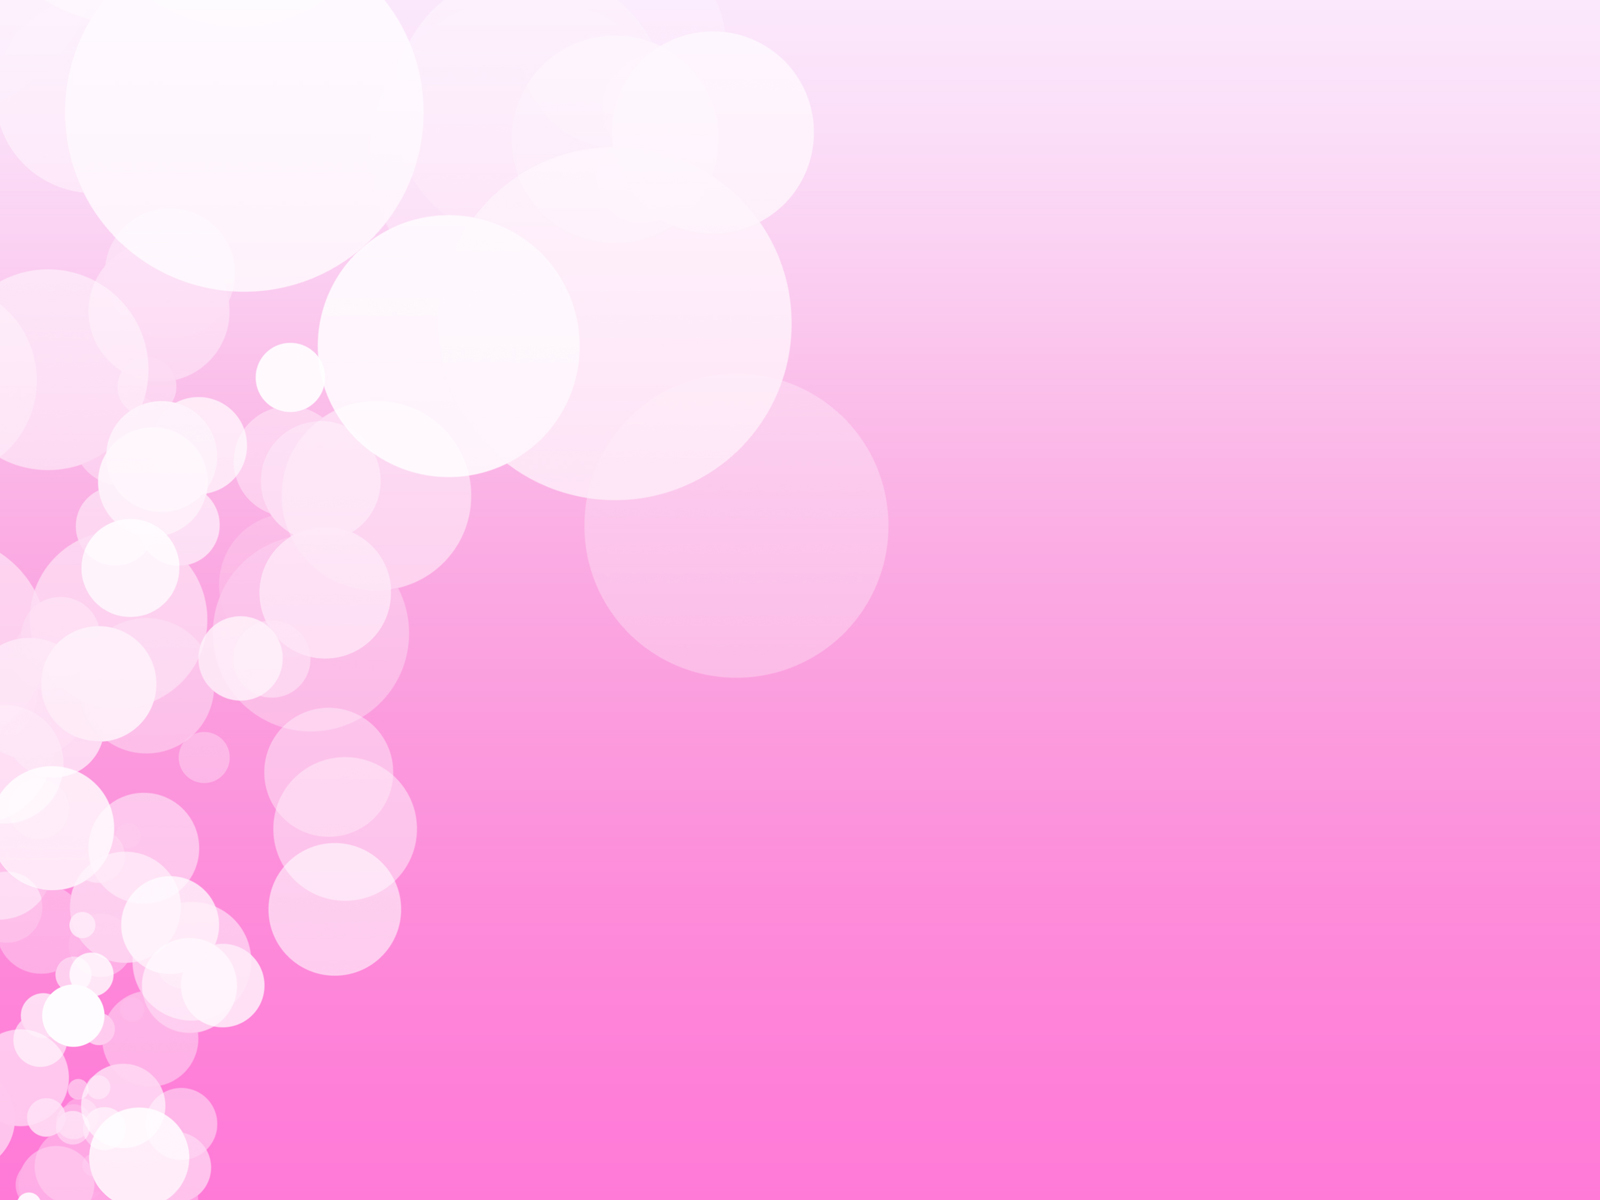 bubbles-on-pink-backgrounds-wallpapers-bubbles-on-pink-ppt-background